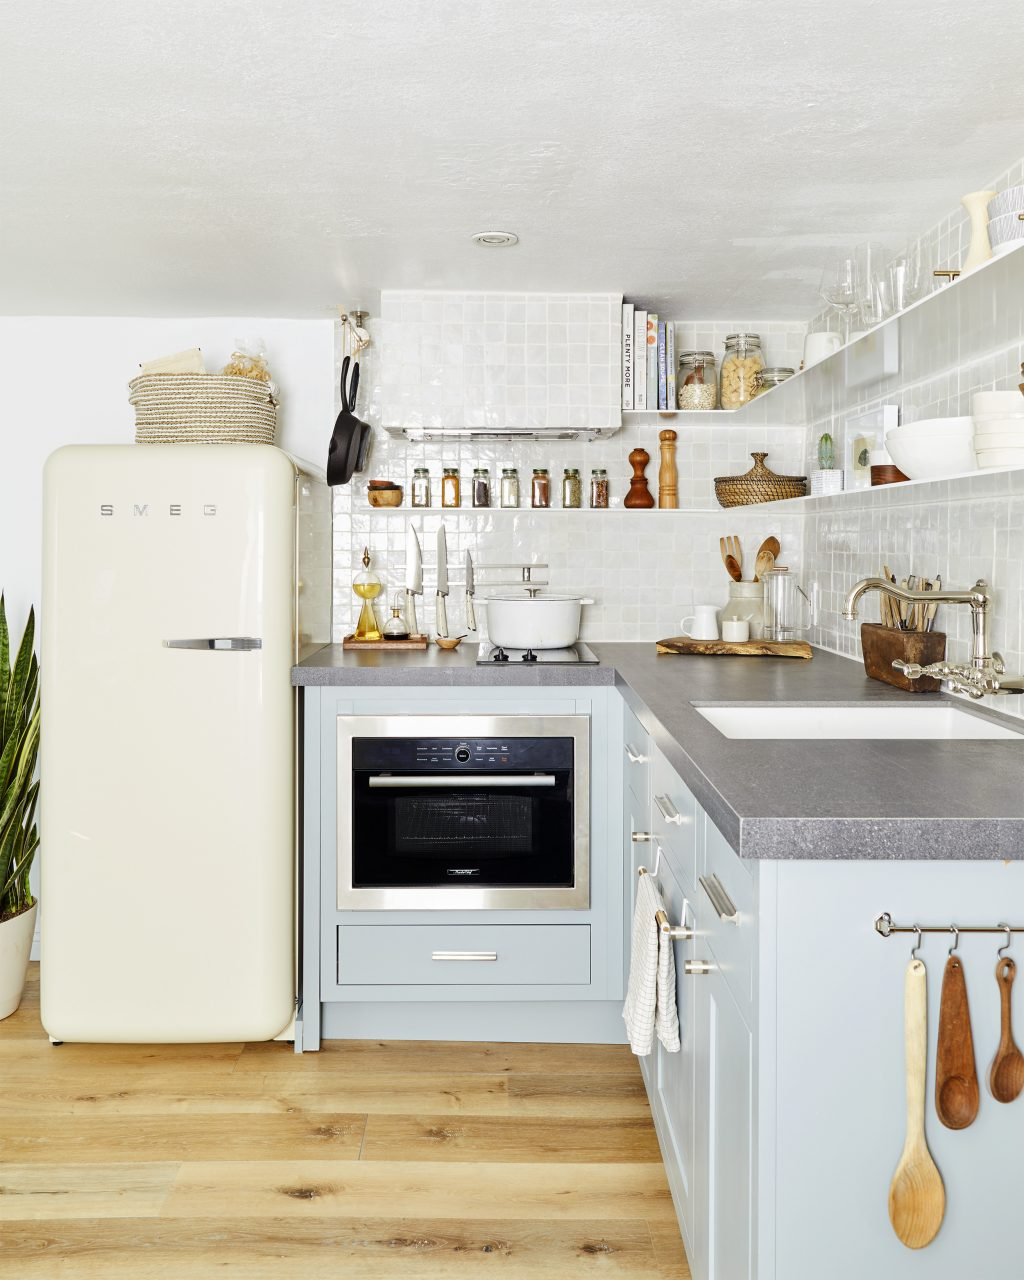 How To Design A 49 Square Foot Tiny Kitchen With Tons Of Smart Storage